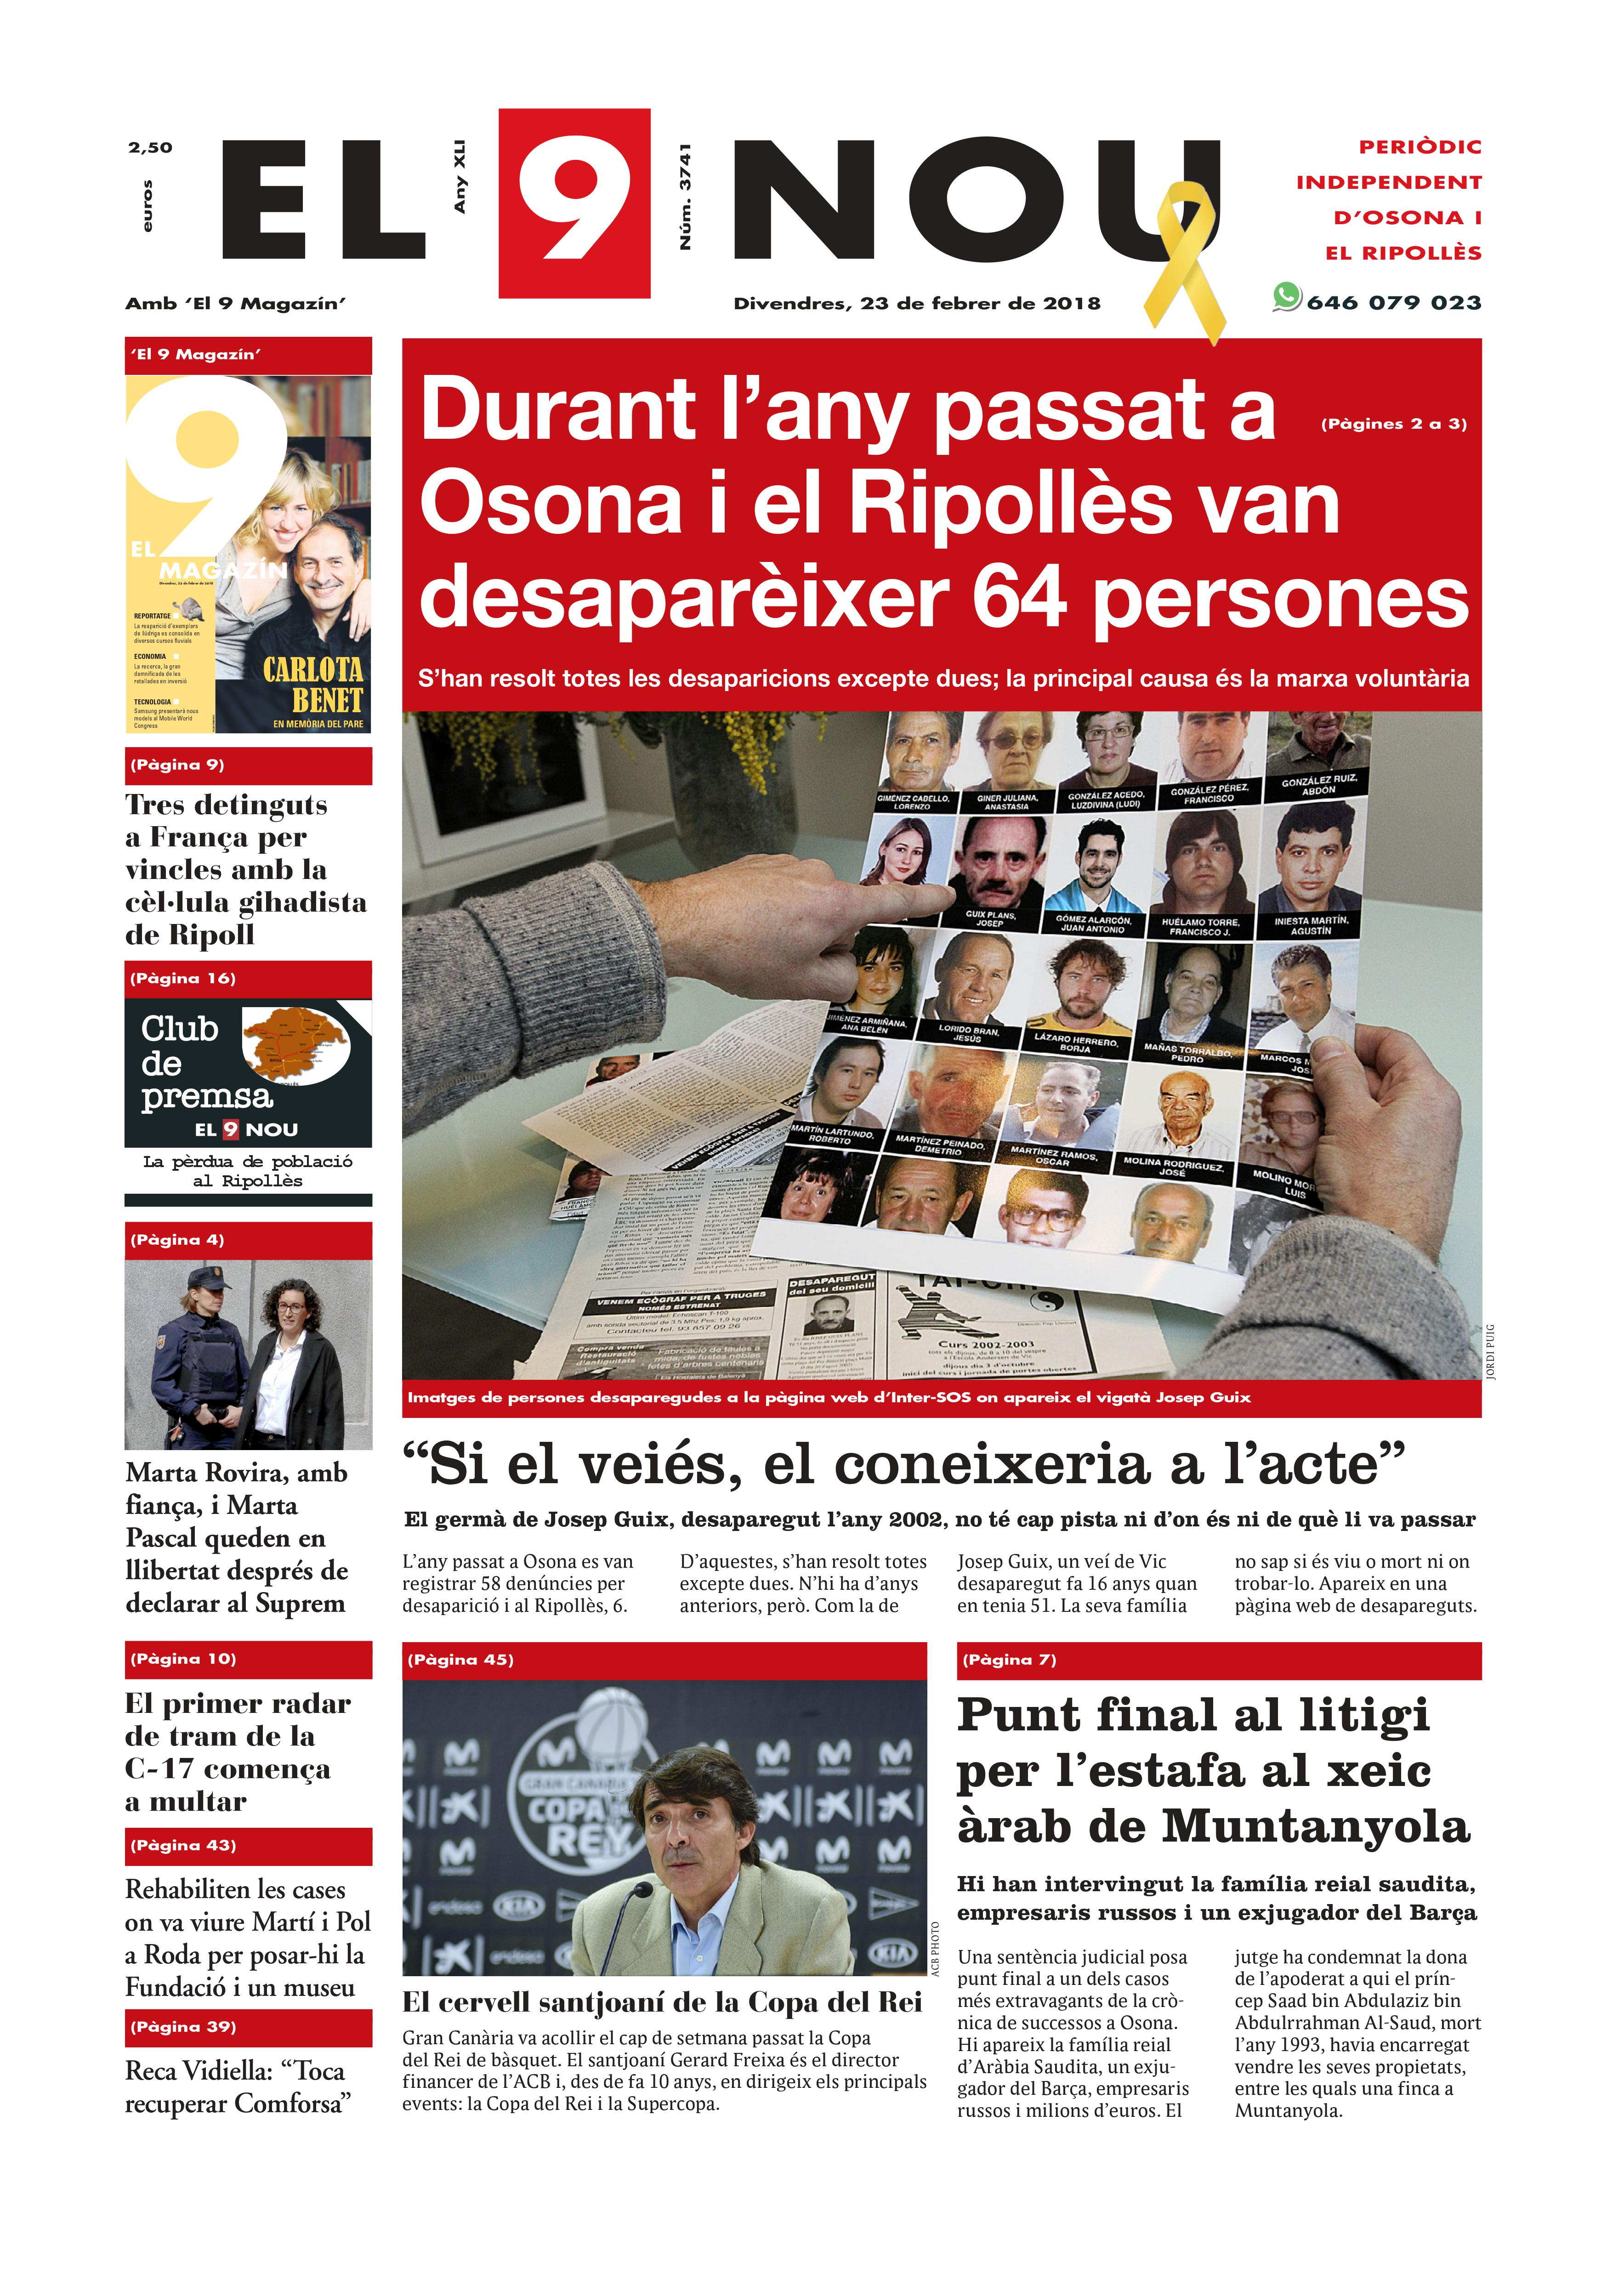 Portada del 23 de febrer de 2018